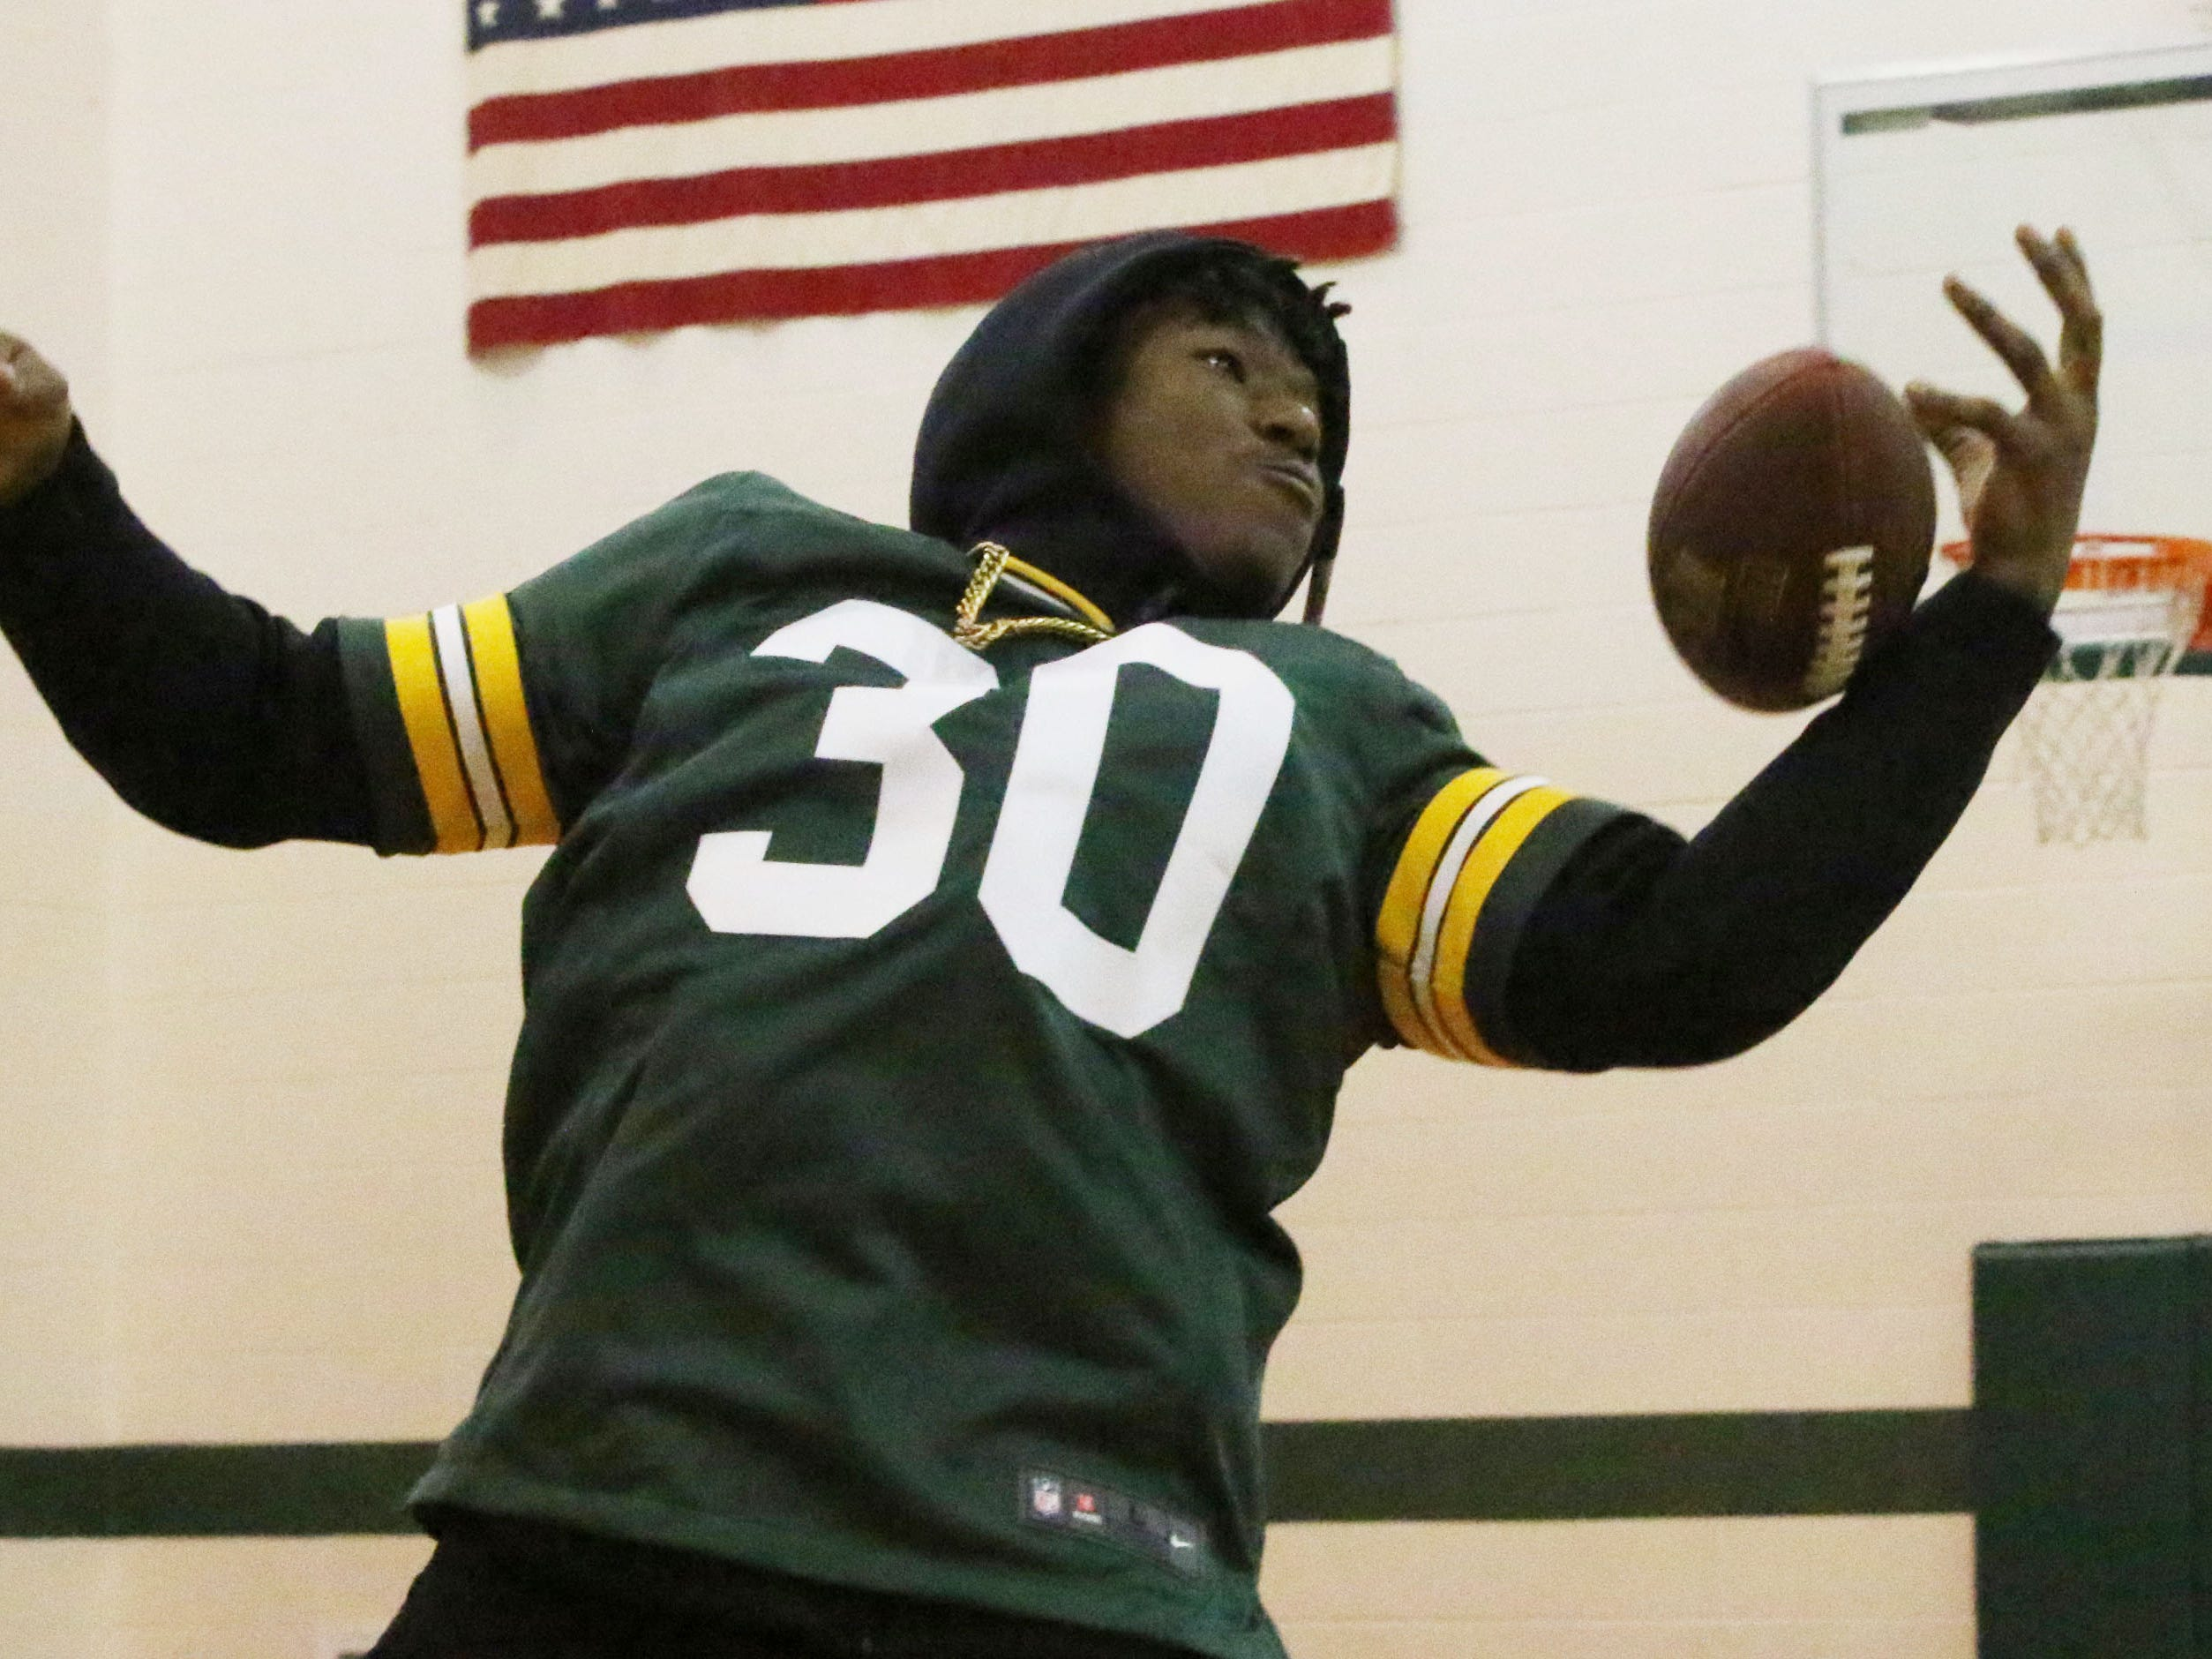 Green Bay Packer Green Bay Packer Jamaal Williams fumbles a football tossed to him during a presentation he gave at St. John the Baptist Catholic School, Tuesday, November 6, 2018, in Plymouth, Wis.